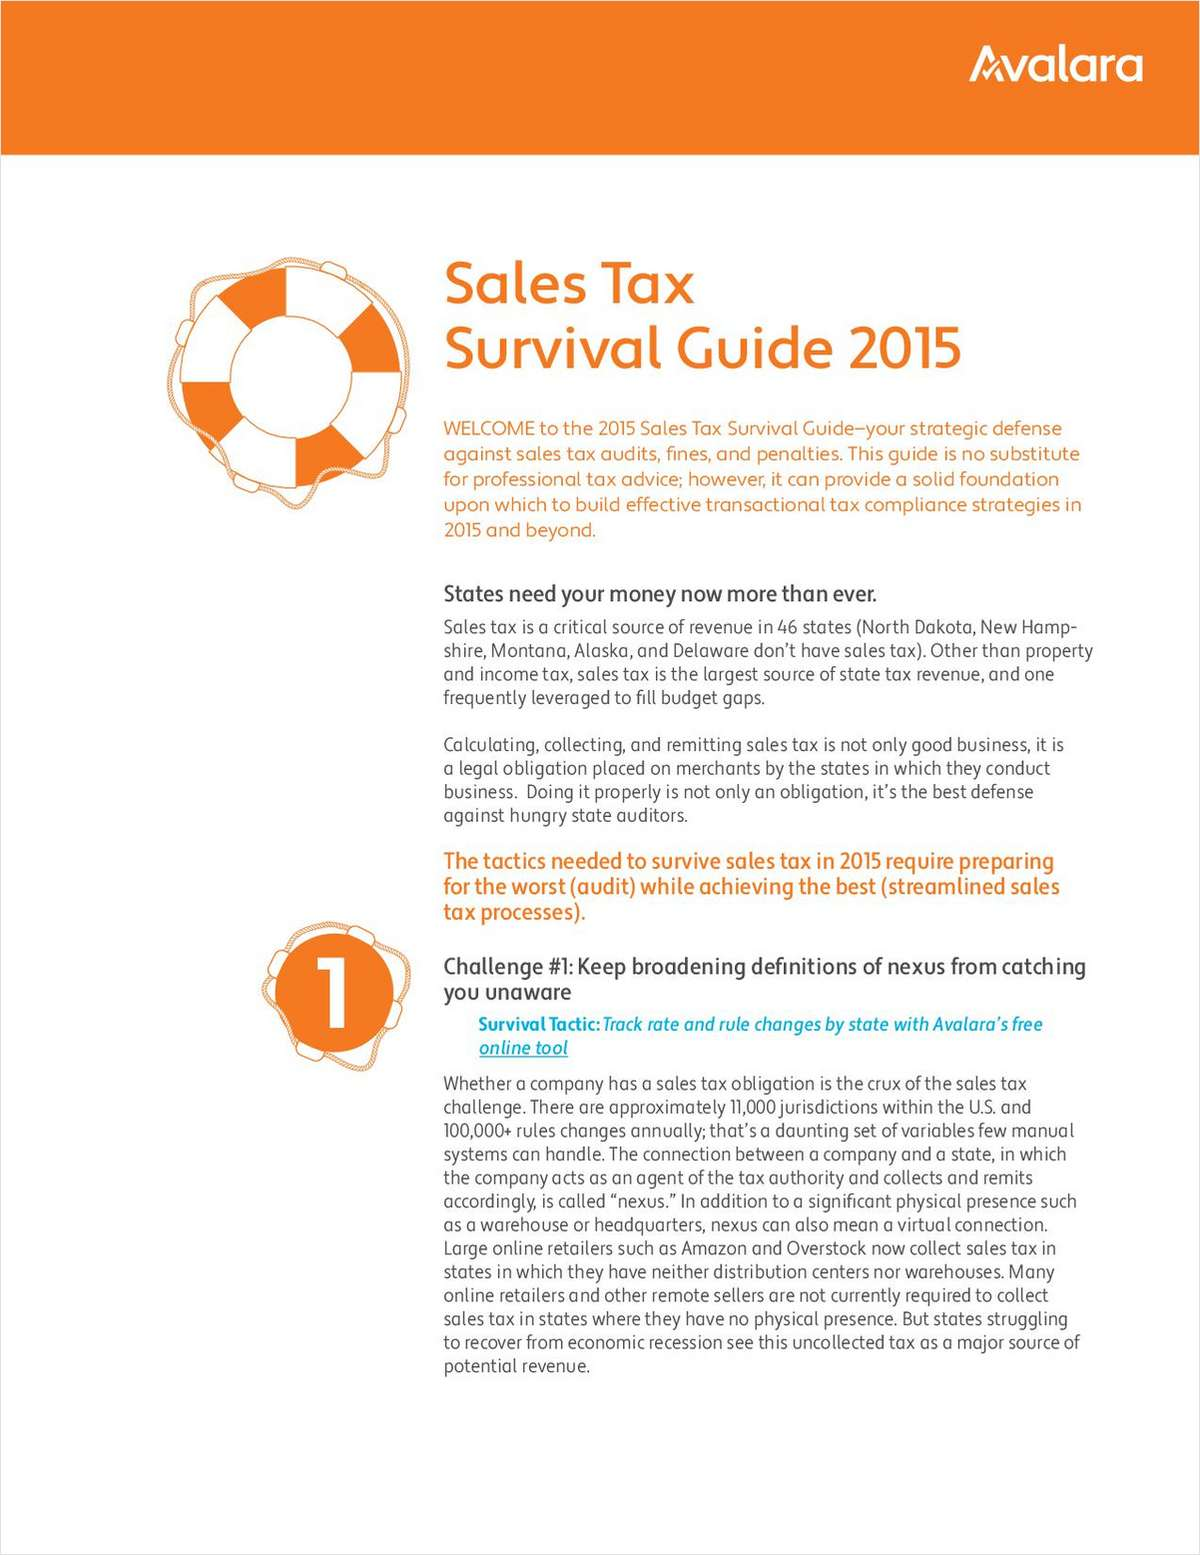 Sales Tax Survival Guide 2015